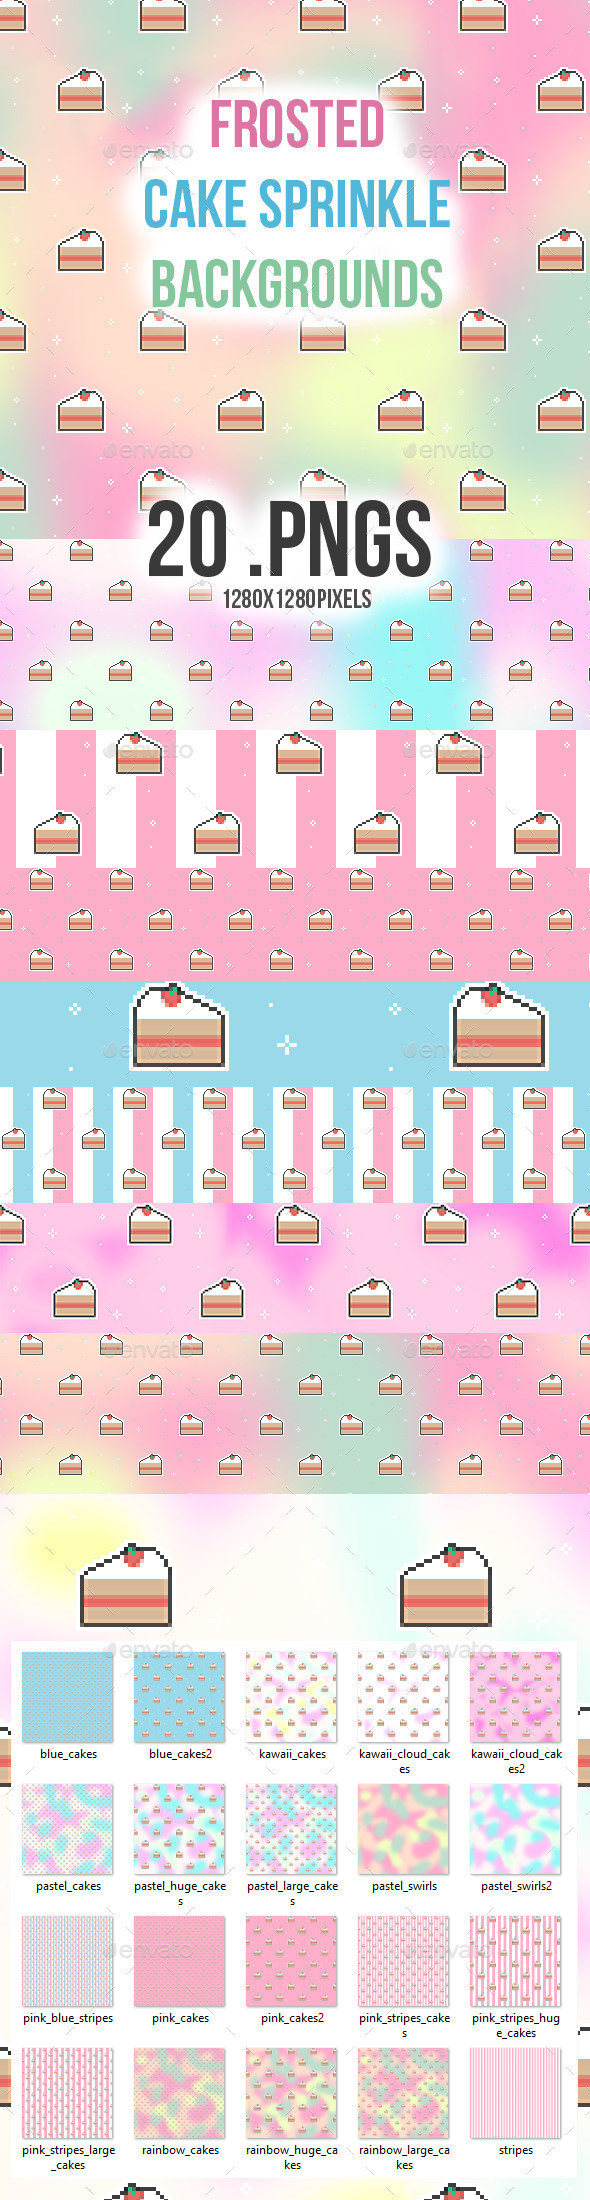 Cakefrosting bg preview